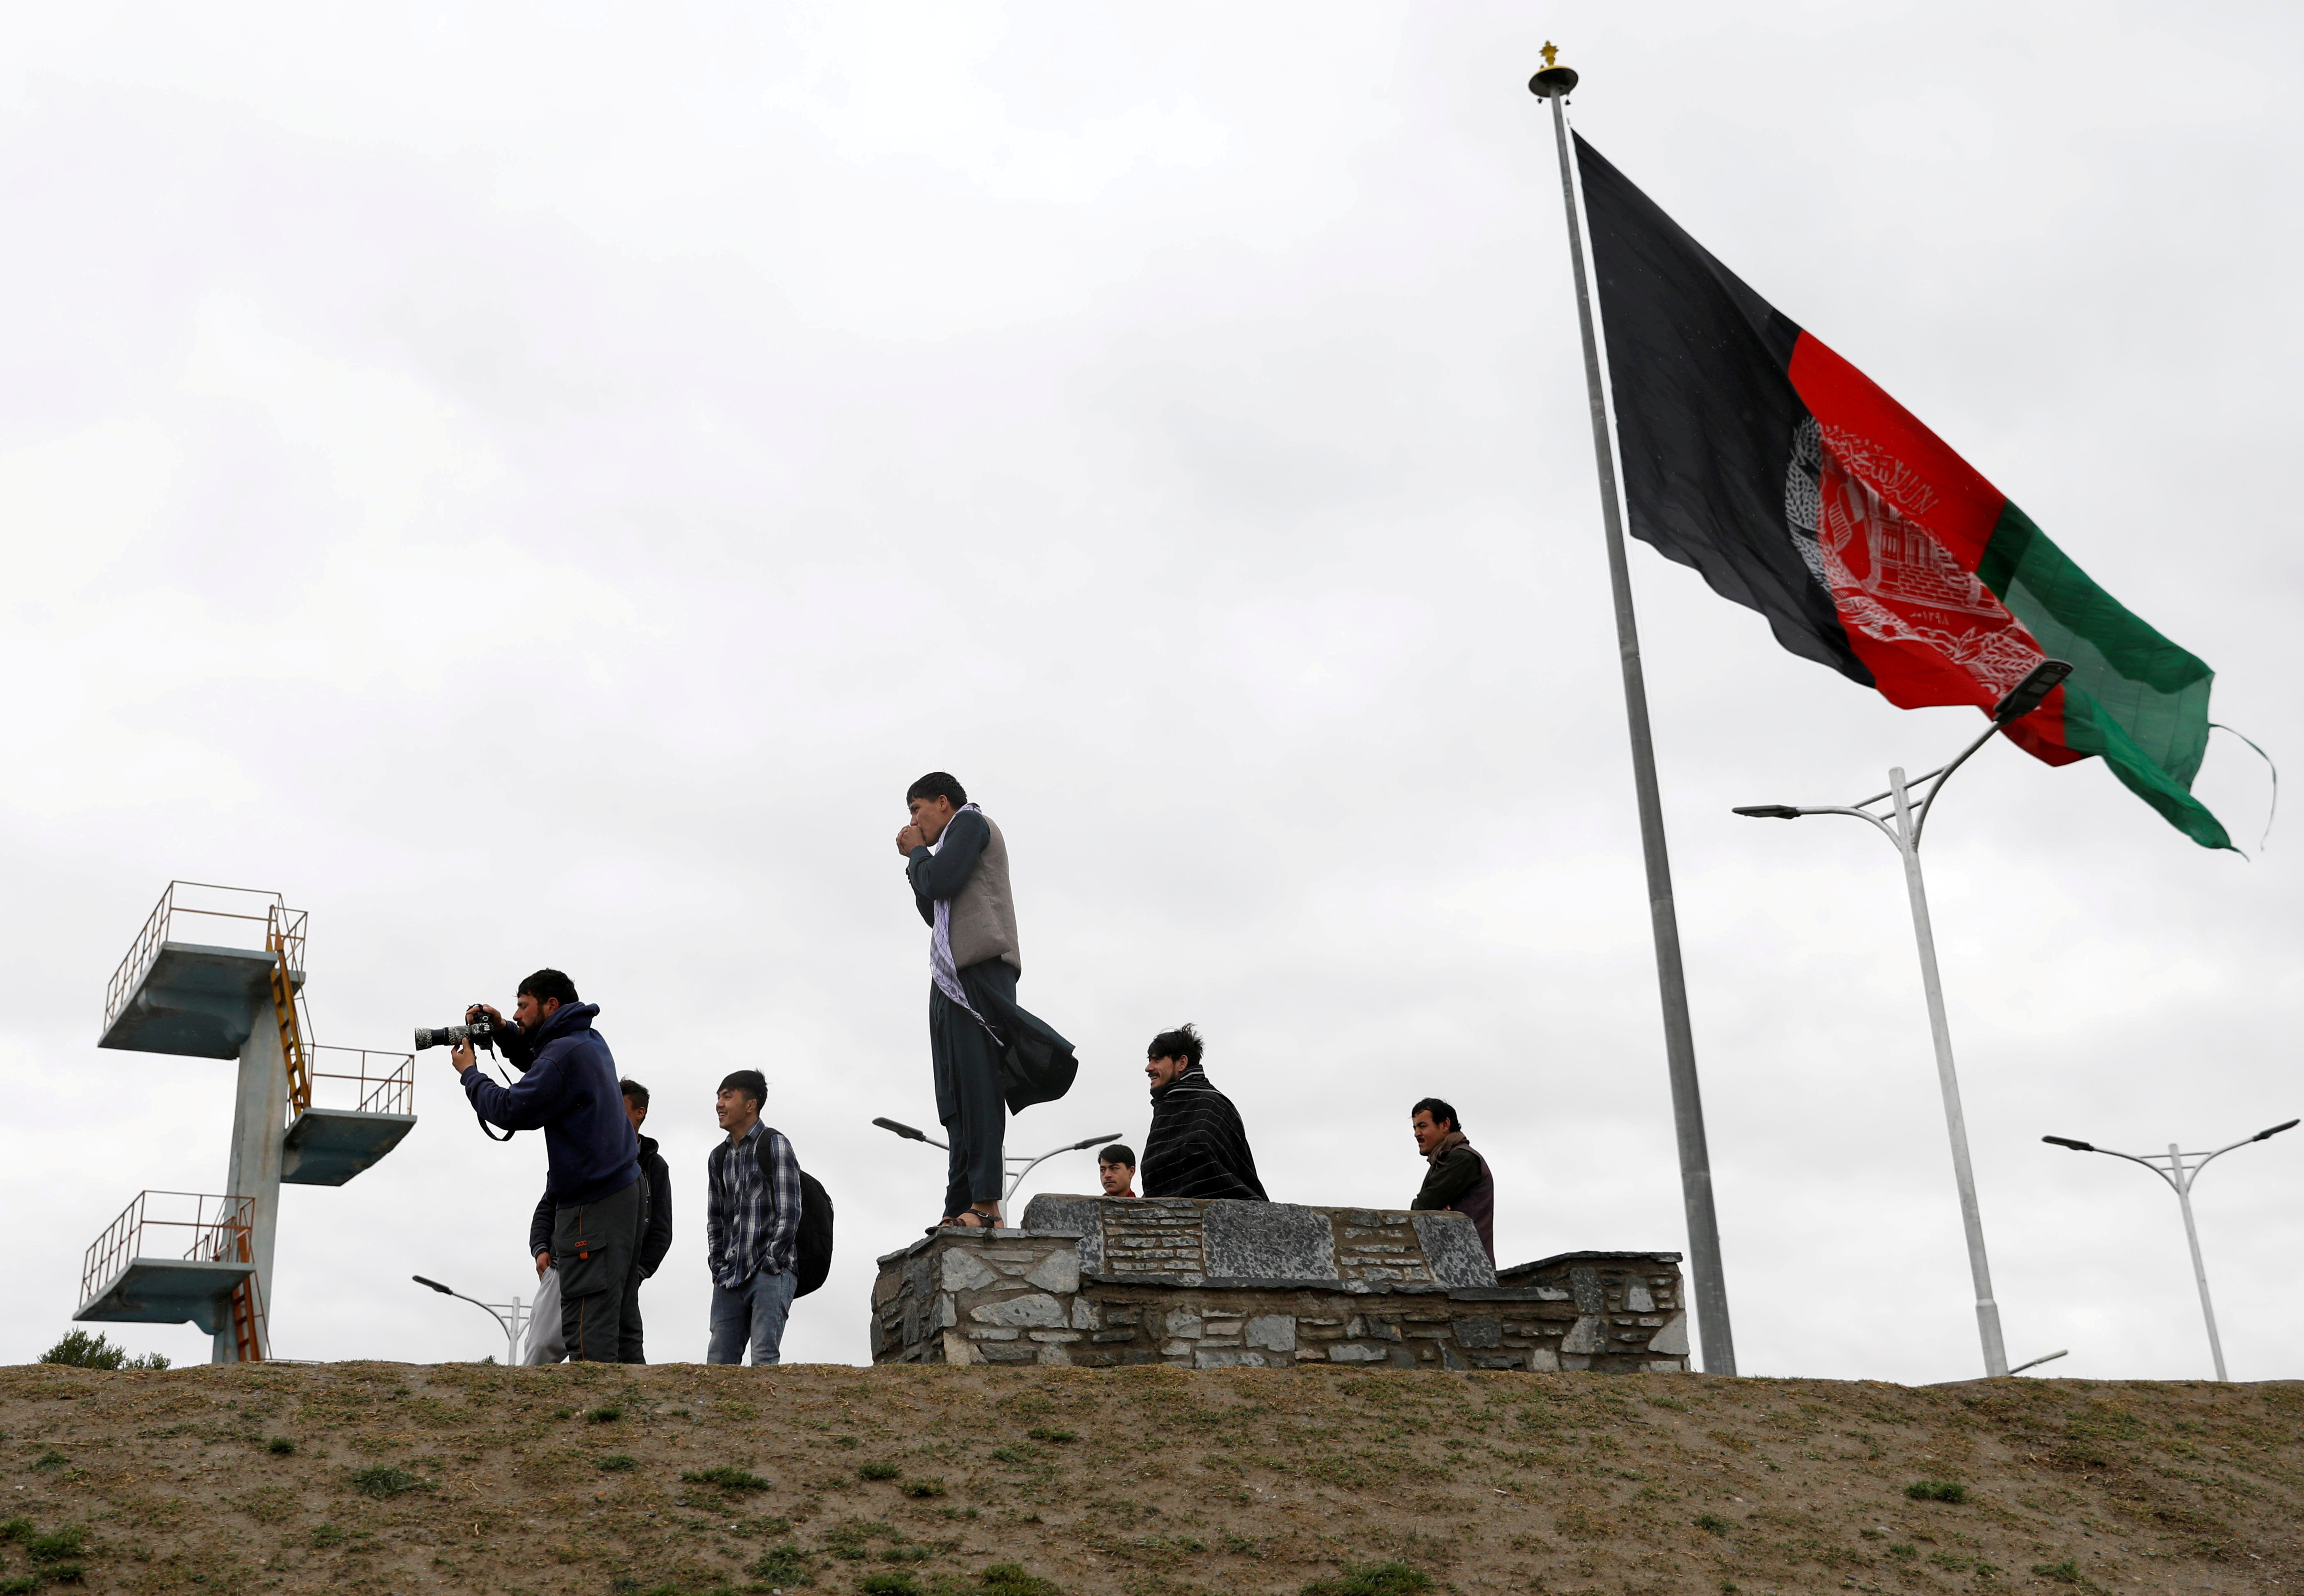 Youths take pictures next to an Afghan flag on a hilltop overlooking Kabul, Afghanistan, April 15, 2021. REUTERS/Mohammad Ismail/File Photo